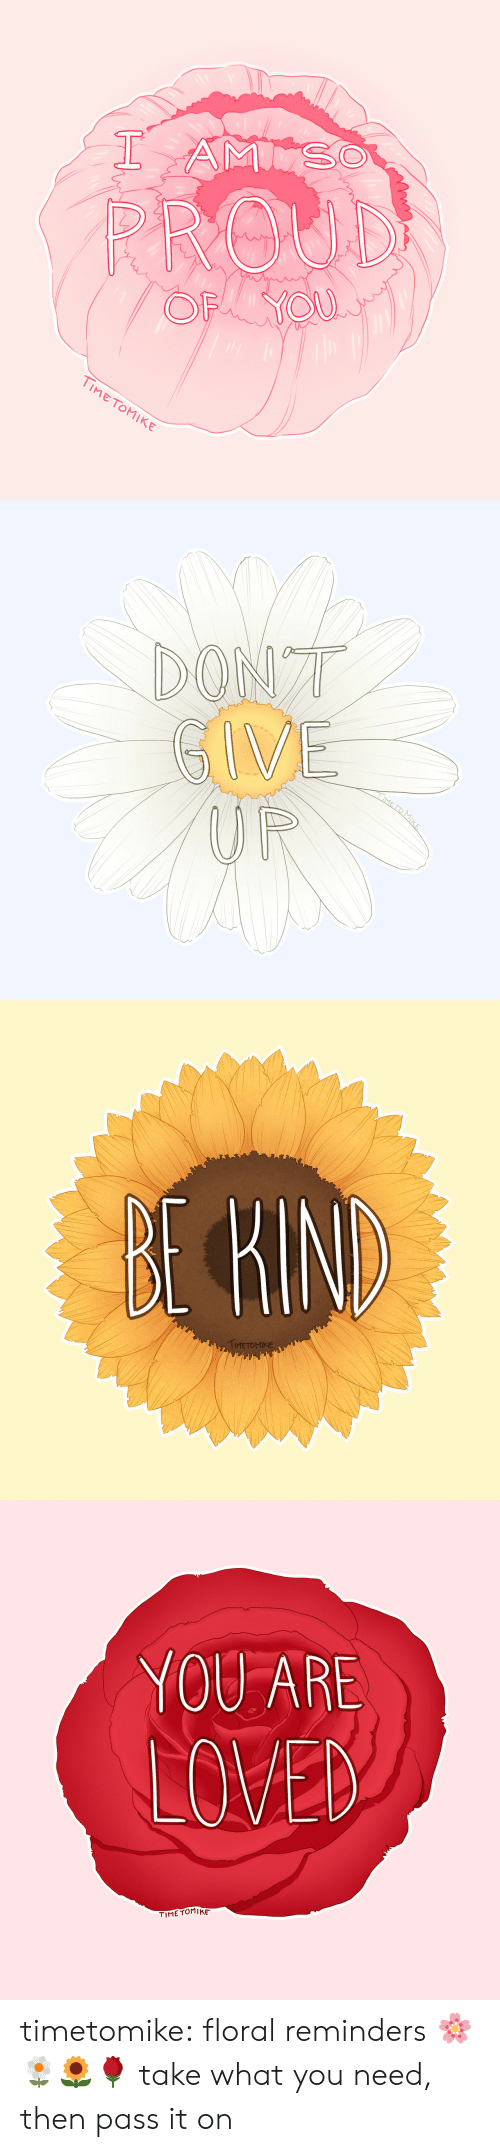 Tumblr, Blog, and Http: Ti  METOMIKE   IME TOMIKE   YOU ARE  LOVED  TIME TOMIKE timetomike:  floral reminders 🌸🌼🌻🌹 take what you need, then pass it on